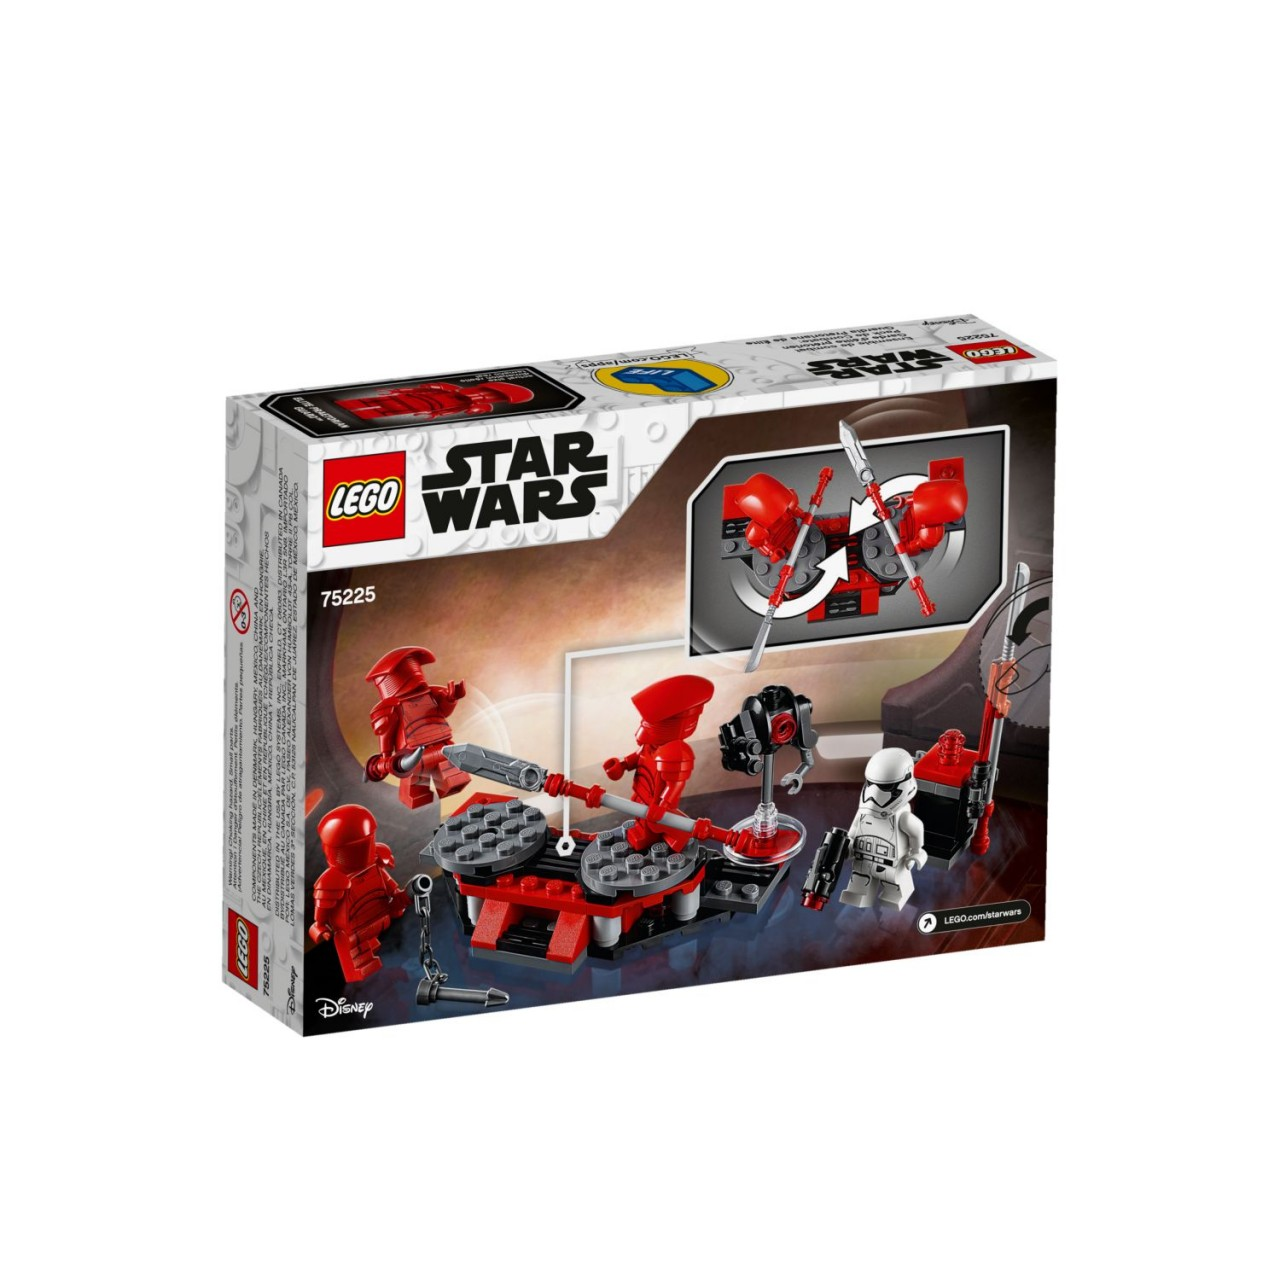 LEGO STAR WARS 75225 Elite Praetorian Guard Battle Pack